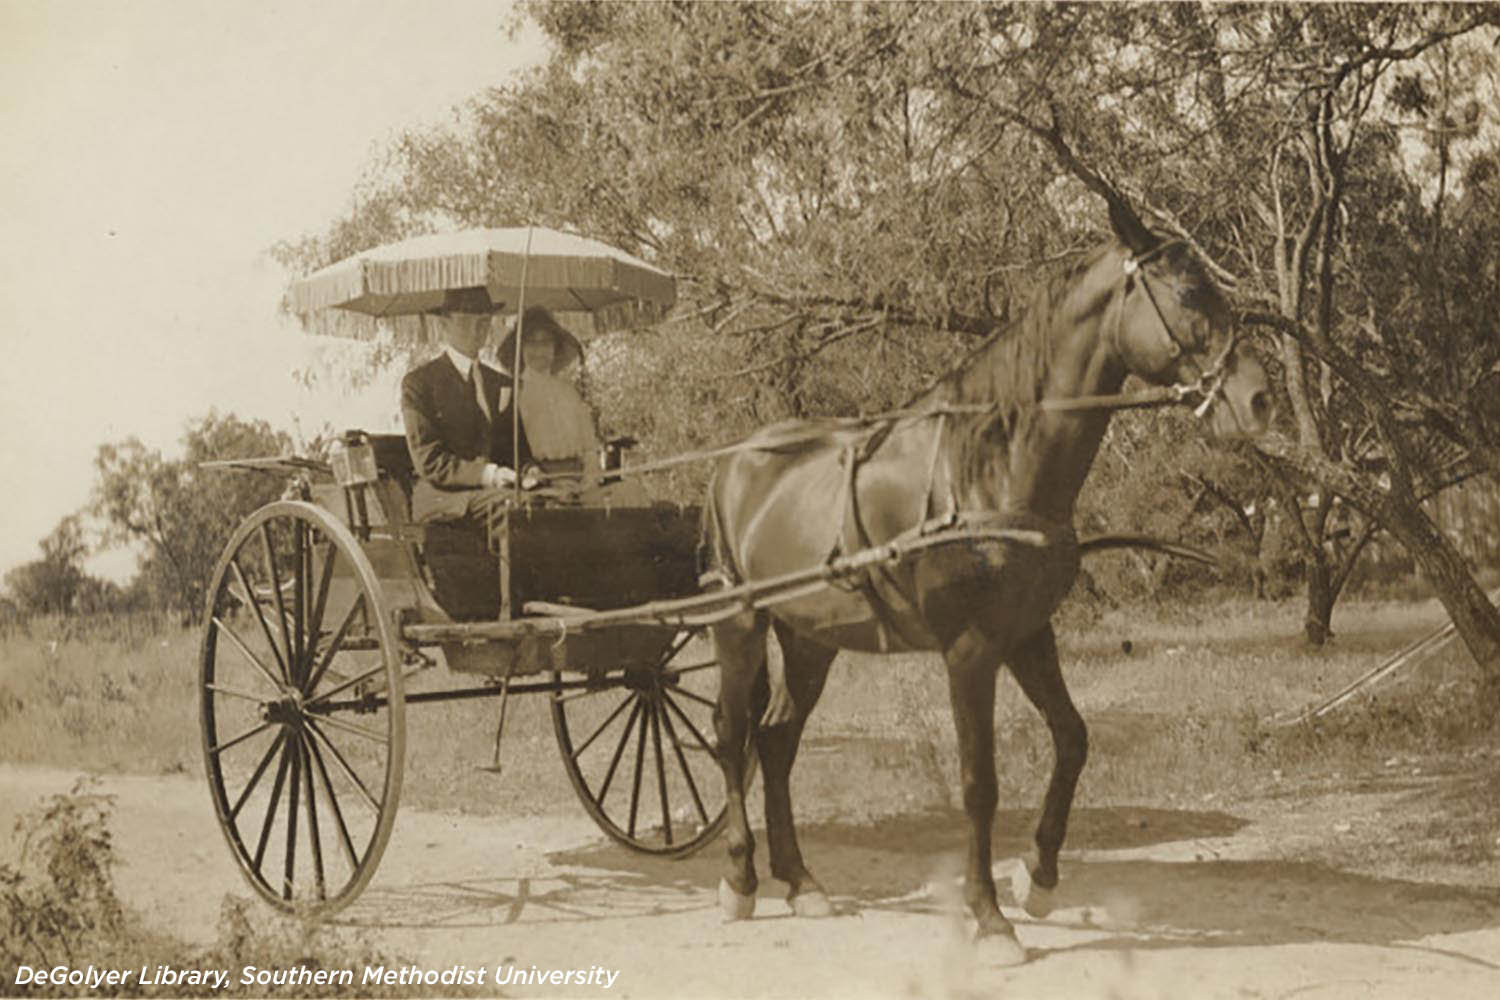 Couple in a horse-drawn buggy